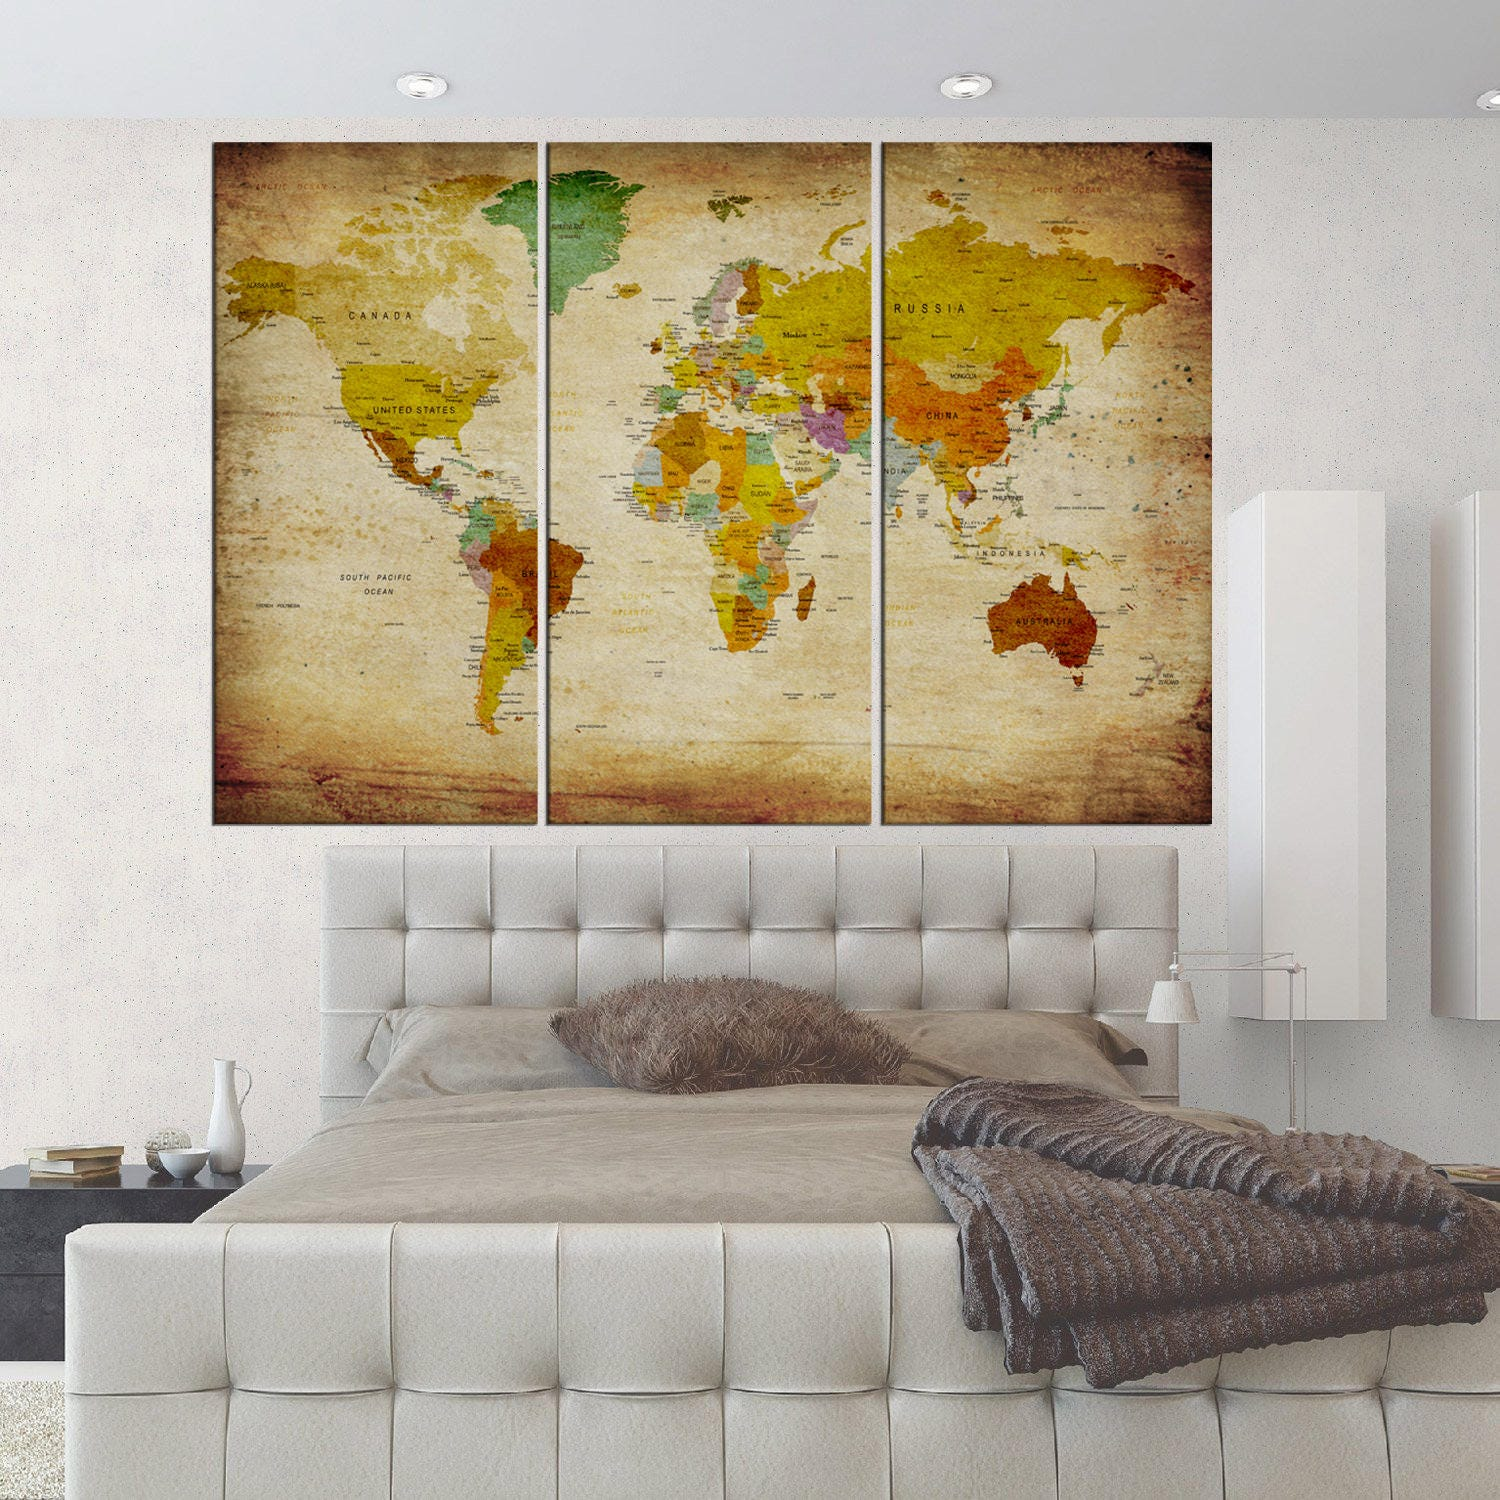 Large canvas art Old world map push pin wall art canvas print